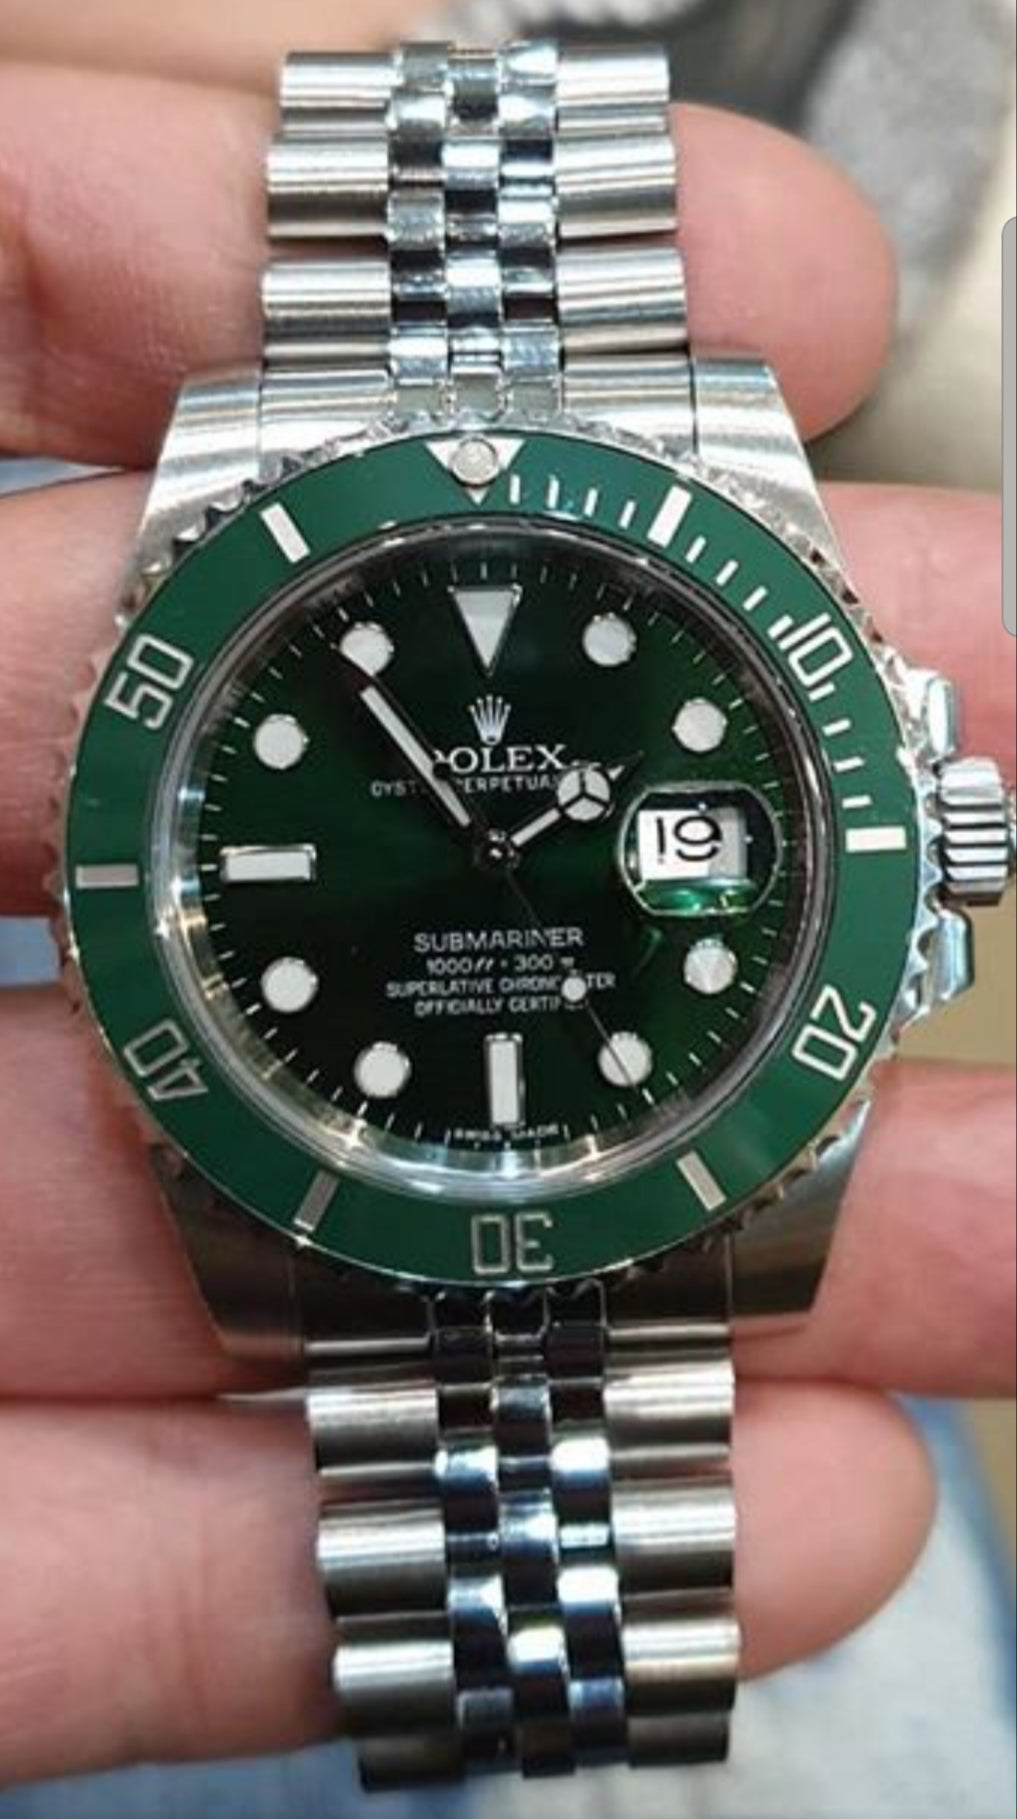 Rolex Submariner Green Dial Steel Mens Watch 116610lv HULK replica